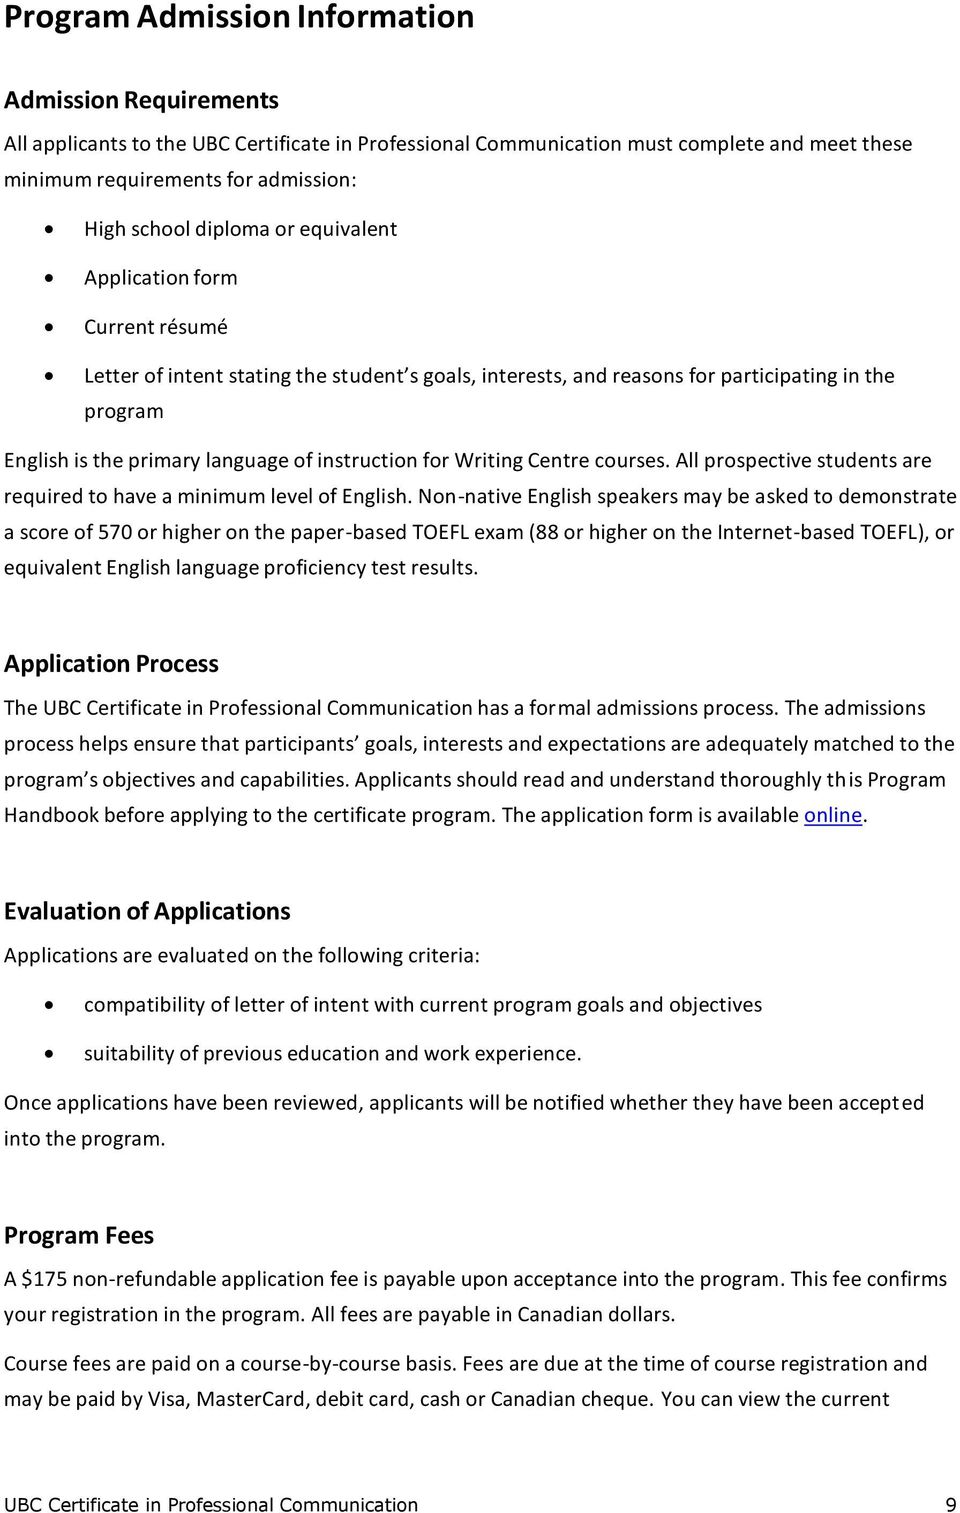 instruction for Writing Centre courses. All prospective students are required to have a minimum level of English.